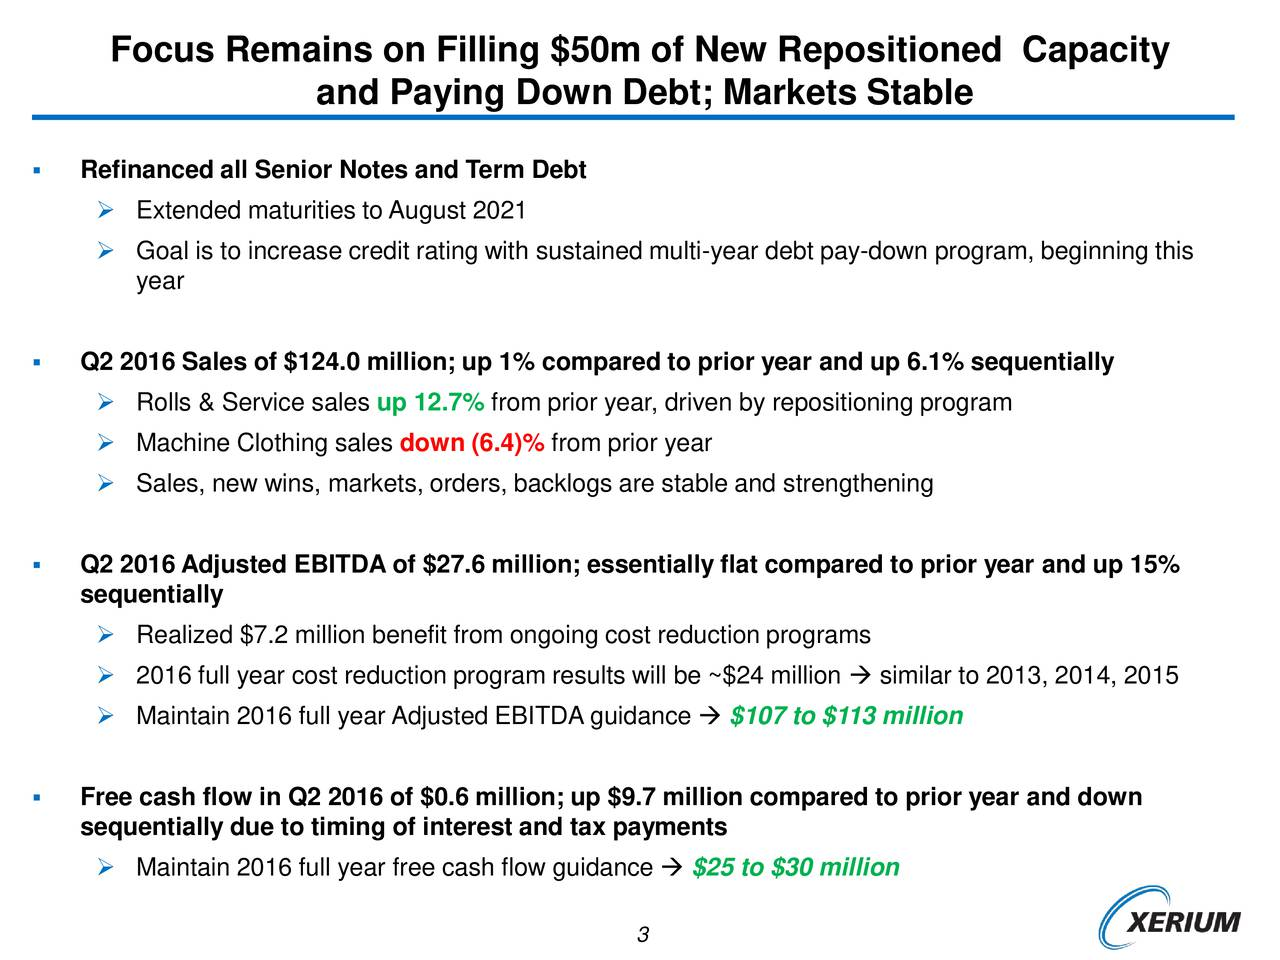 and Paying Down Debt; Markets Stable Refinanced all Senior Notes and Term Debt Extended maturities to August 2021 Goal is to increase credit rating with sustained multi-year debt pay-down program, beginning this year Q2 2016 Sales of $124.0 million; up 1% compared to prior year and up 6.1% sequentially Rolls & Service sales up 12.7% from prior year, driven by repositioning program Machine Clothing sales down (6.4)% from prior year Sales, new wins, markets, orders, backlogs are stable and strengthening Q2 2016 Adjusted EBITDA of $27.6 million; essentially flat compared to prior year and up 15% sequentially Realized $7.2 million benefit from ongoing cost reduction programs 2016 full year cost reduction program results will be ~$24 million  similar to 2013, 2014, 2015 Maintain 2016 full year Adjusted EBITDA guidance  $107 to $113 million Free cash flow in Q2 2016 of $0.6 million; up $9.7 million compared to prior year and down sequentially due to timing of interest and tax payments Maintain 2016 full year free cash flow guidance  $25 to $30 million 3